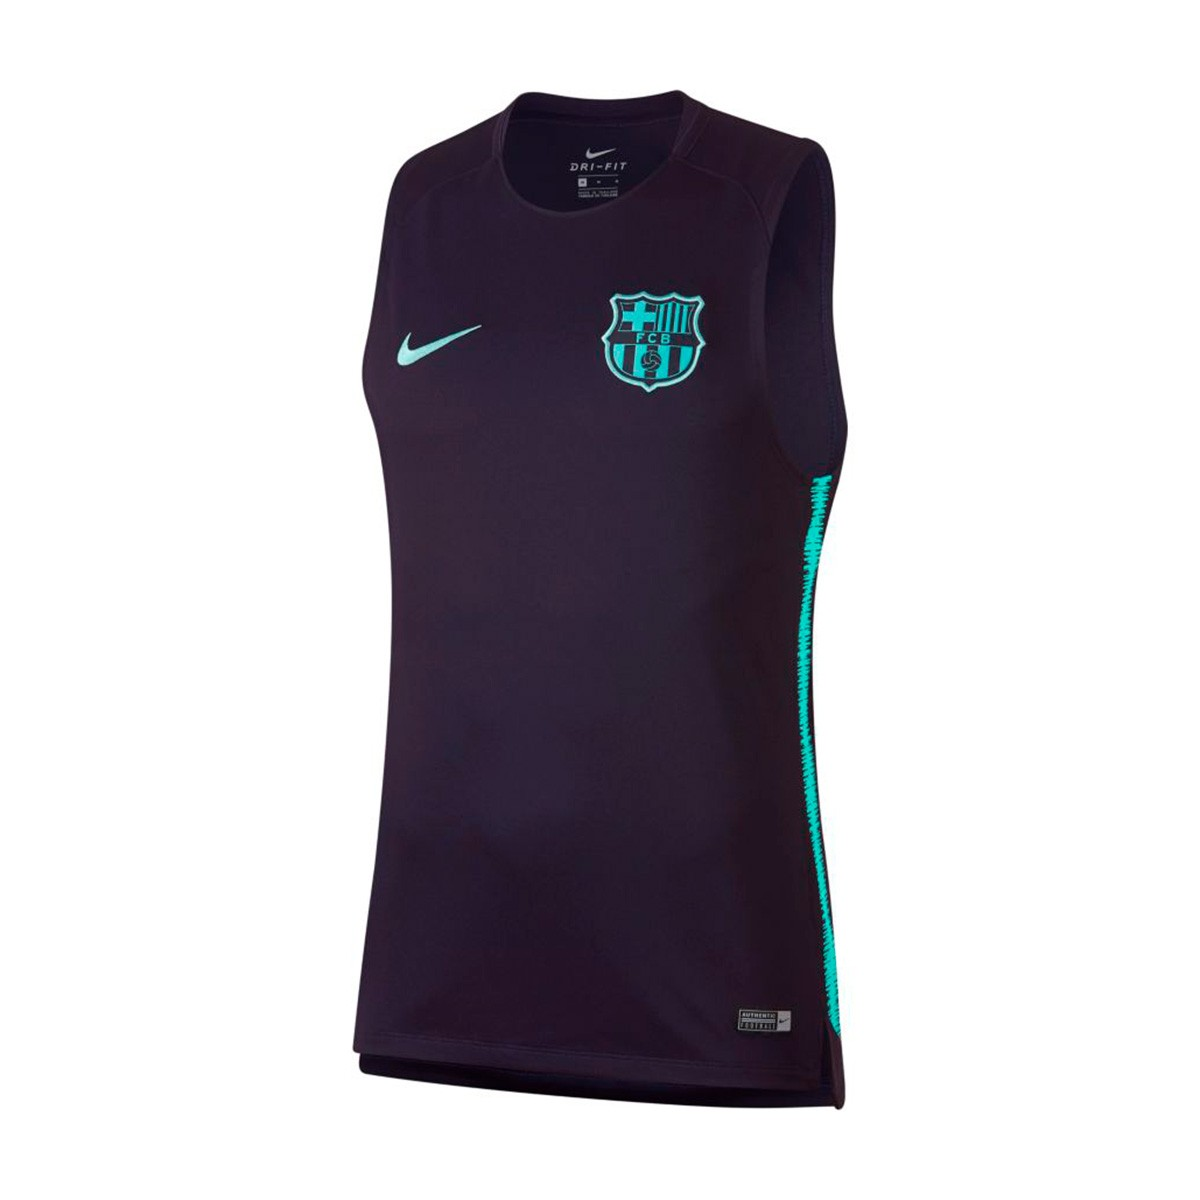 093bc8915a9 Jersey Nike FC Barcelona Squad 2018-2019 Purple dynasty-Hyper turquoise -  Football store Fútbol Emotion